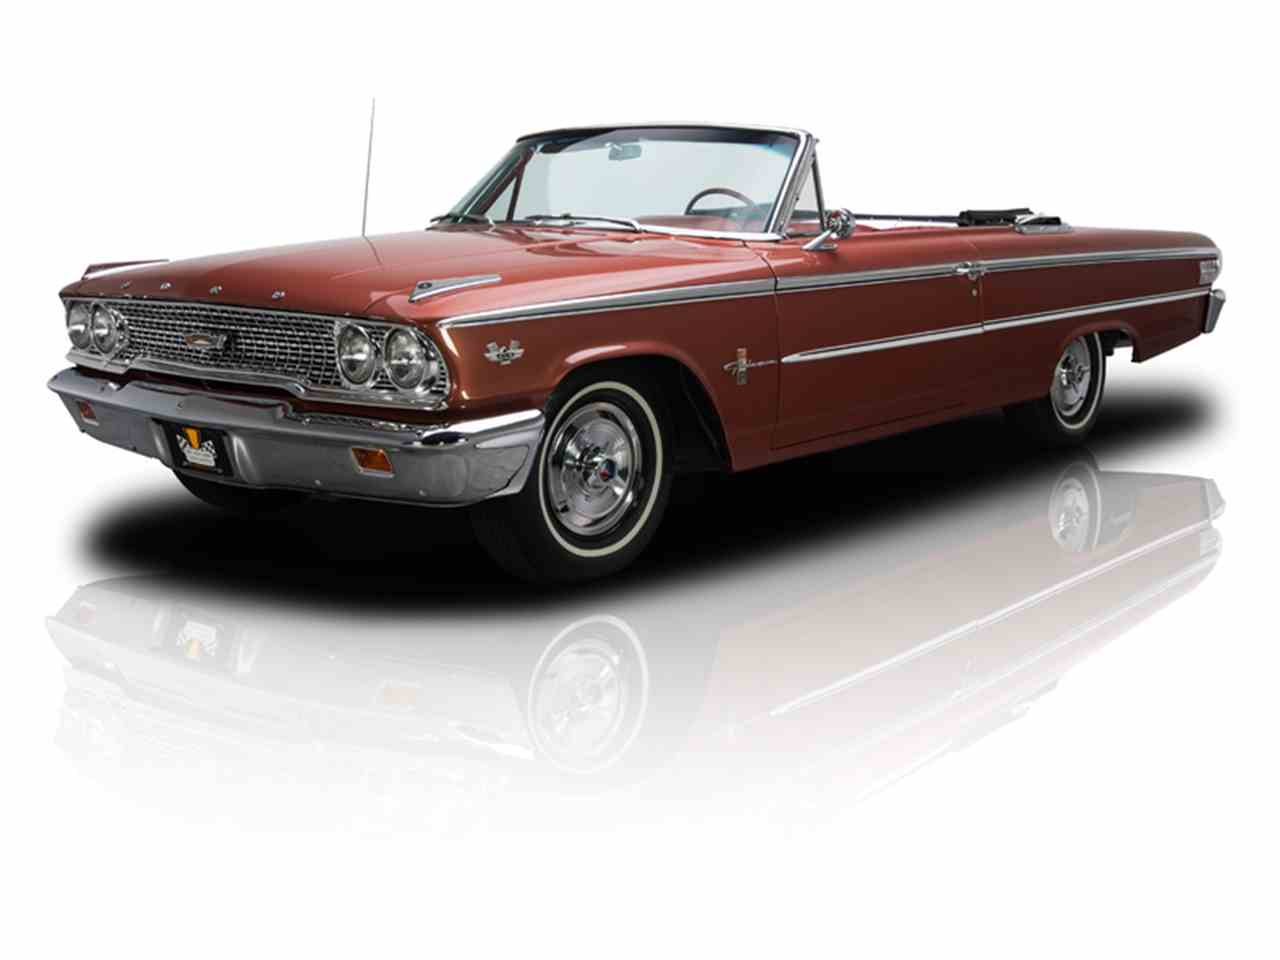 1963 ford galaxie 500 427 - Picture Of 1963 Galaxie 500 Xl Offered By Rk Motors Charlotte Exew